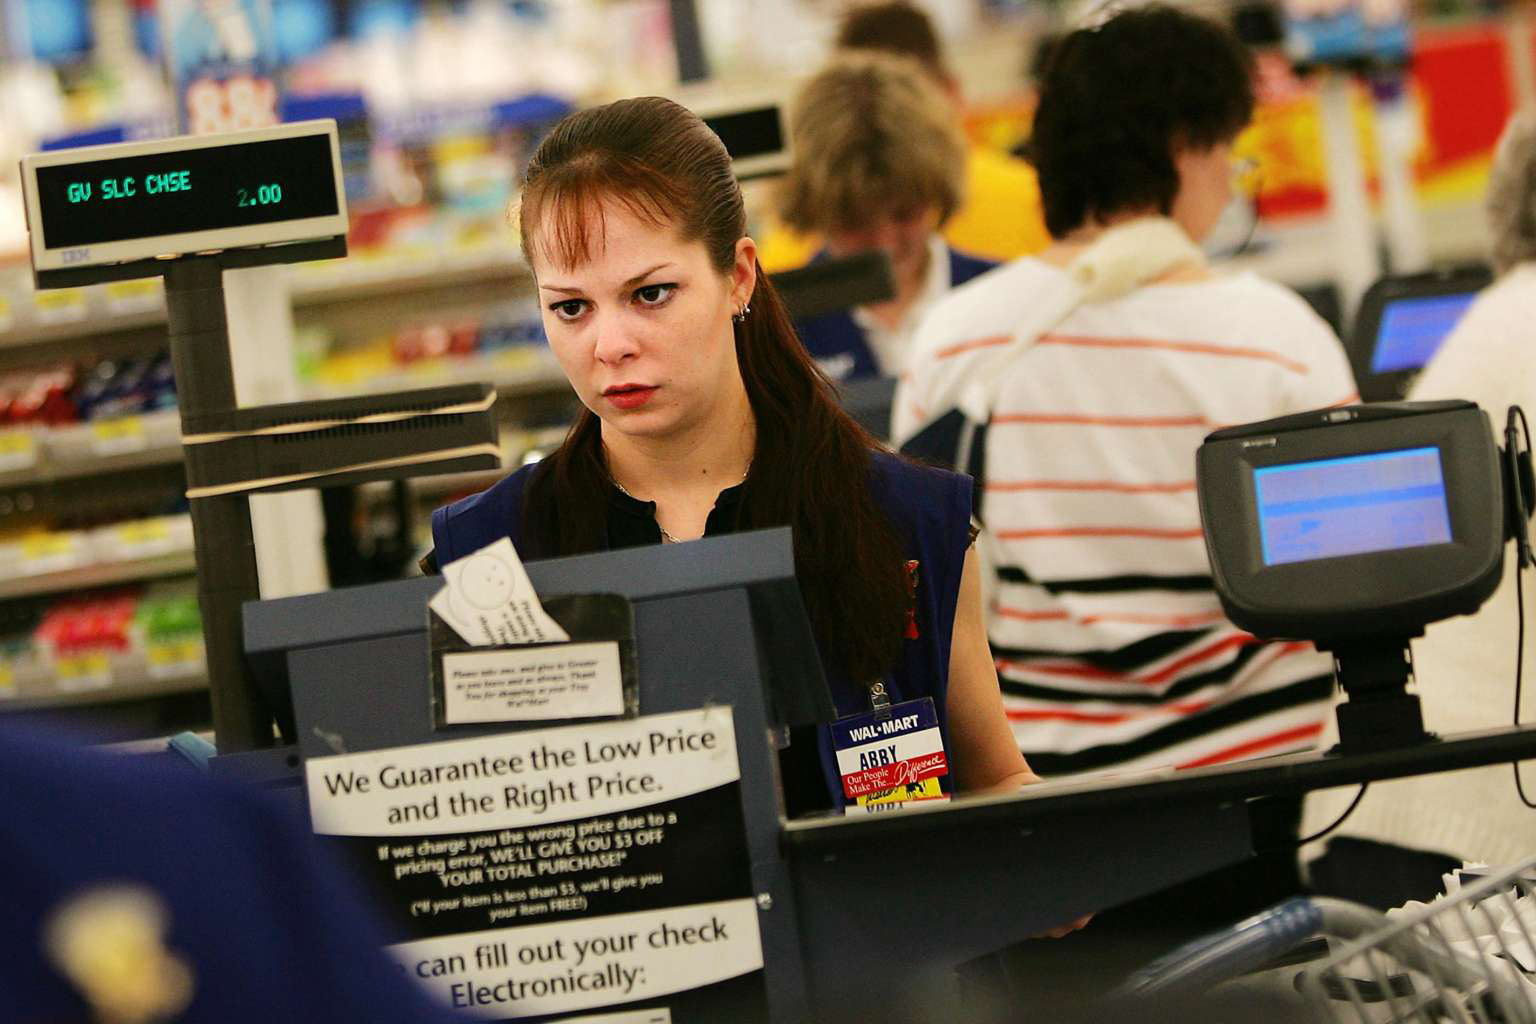 Retail workers share their horror work stories